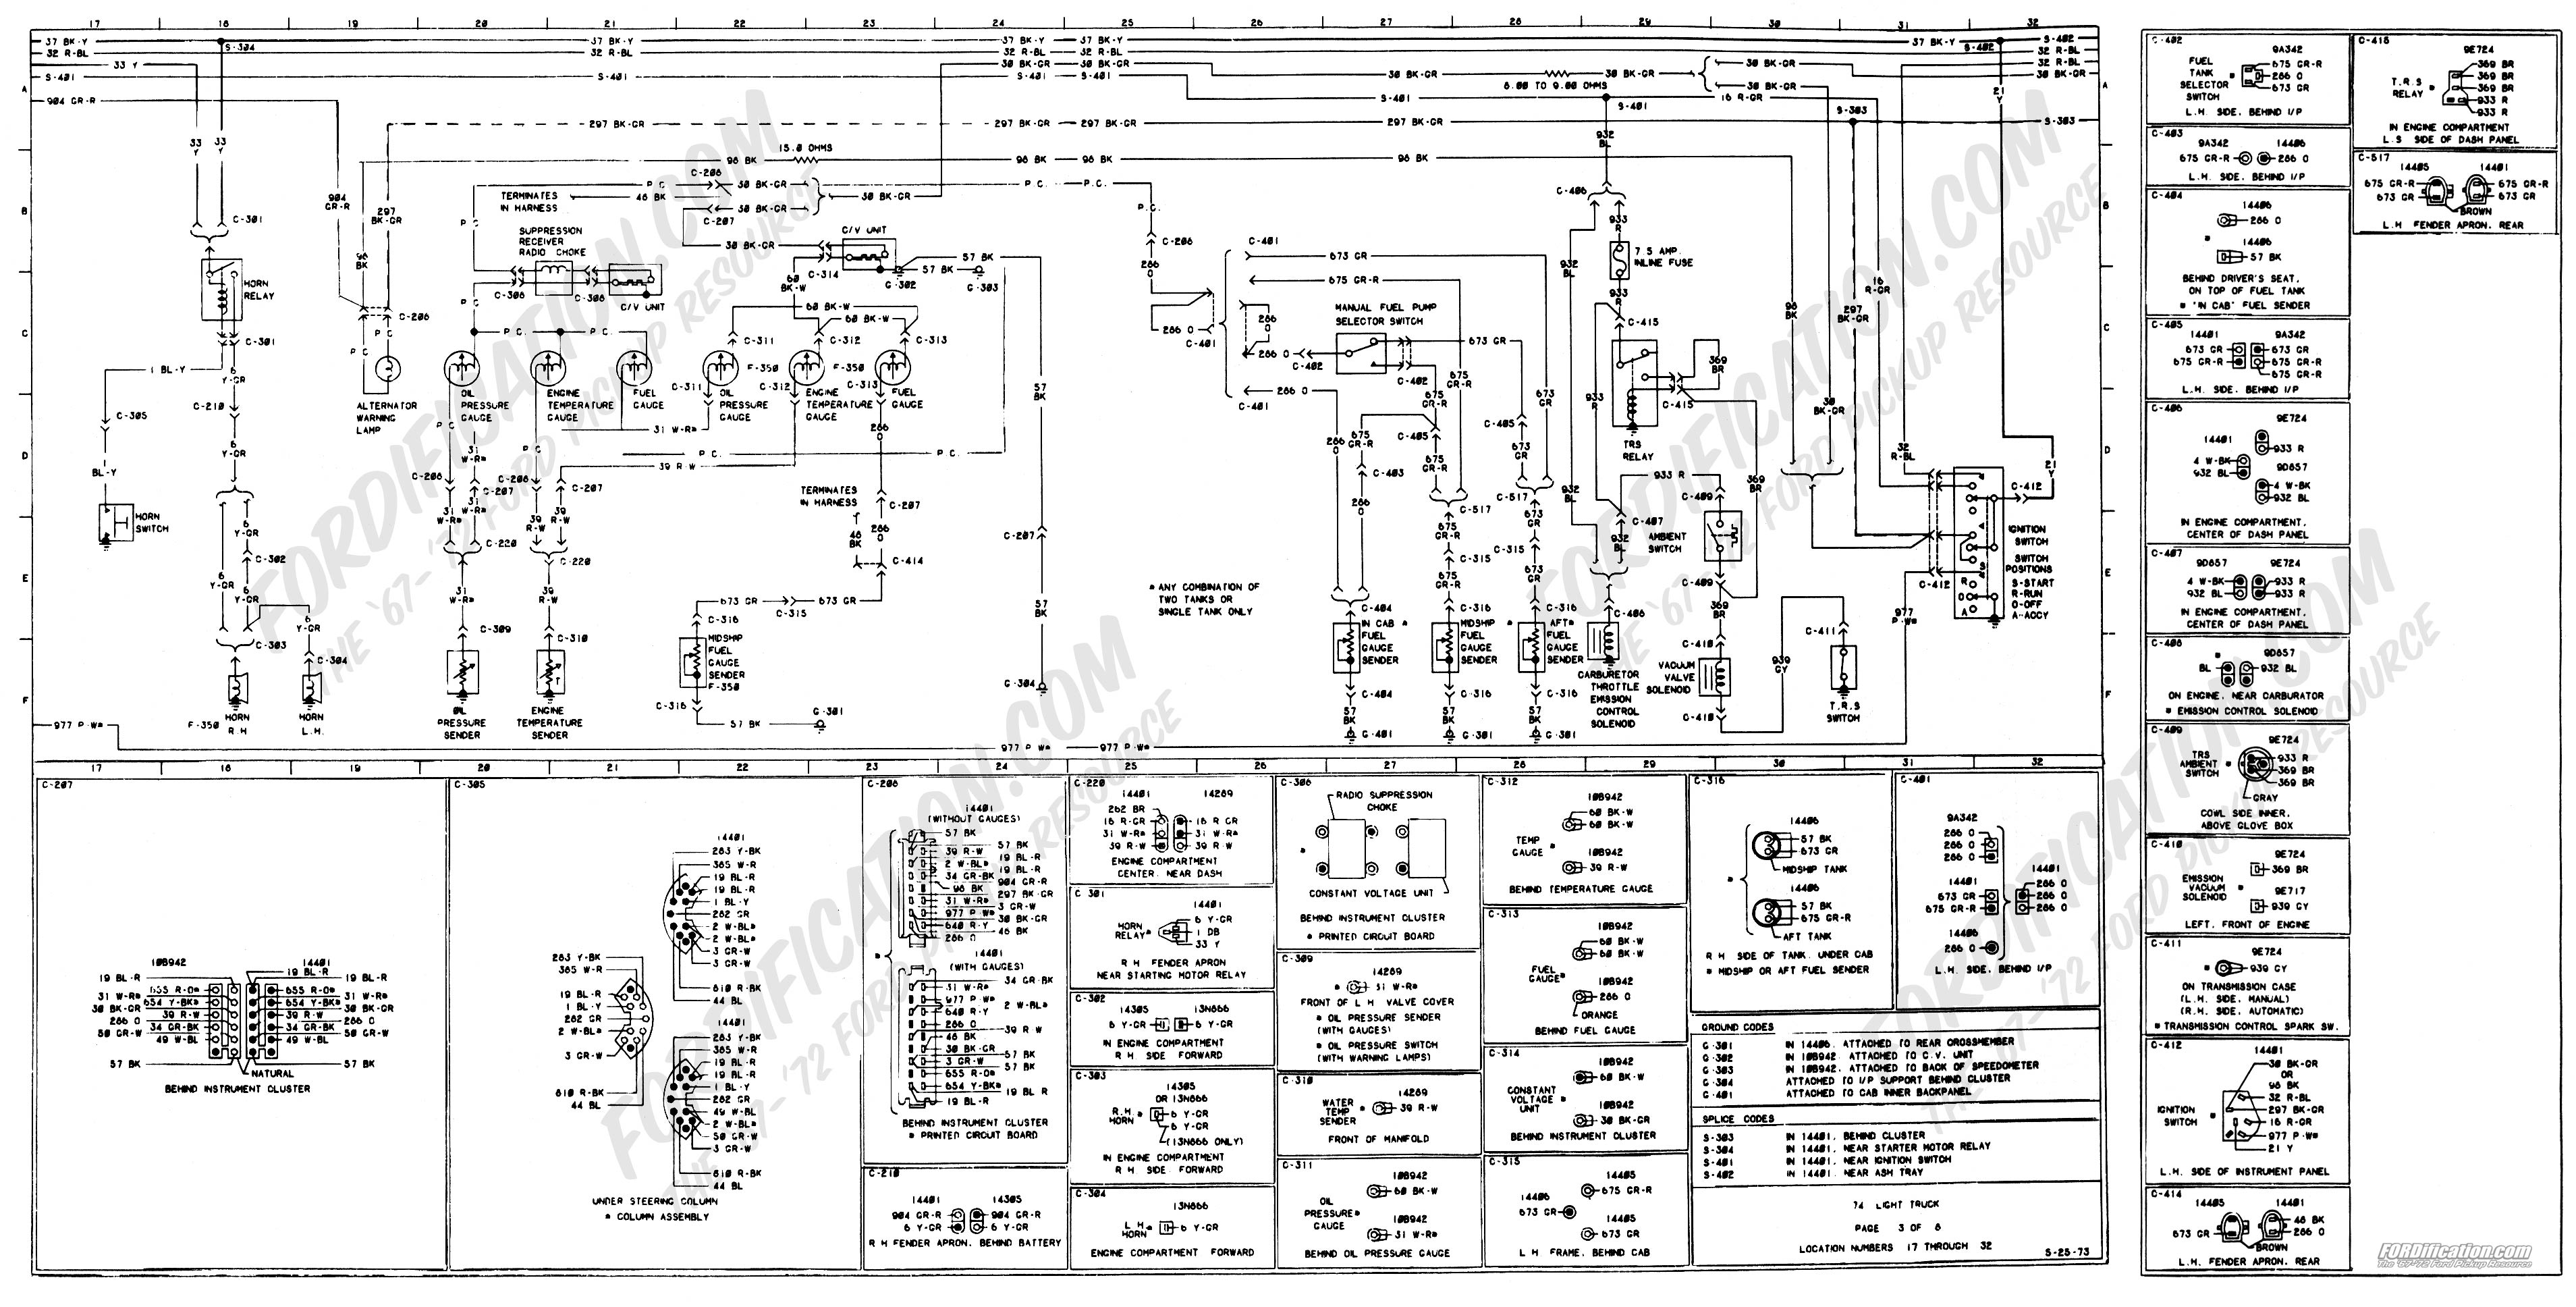 F250 Wiring Schematic - wiring diagrams schematics